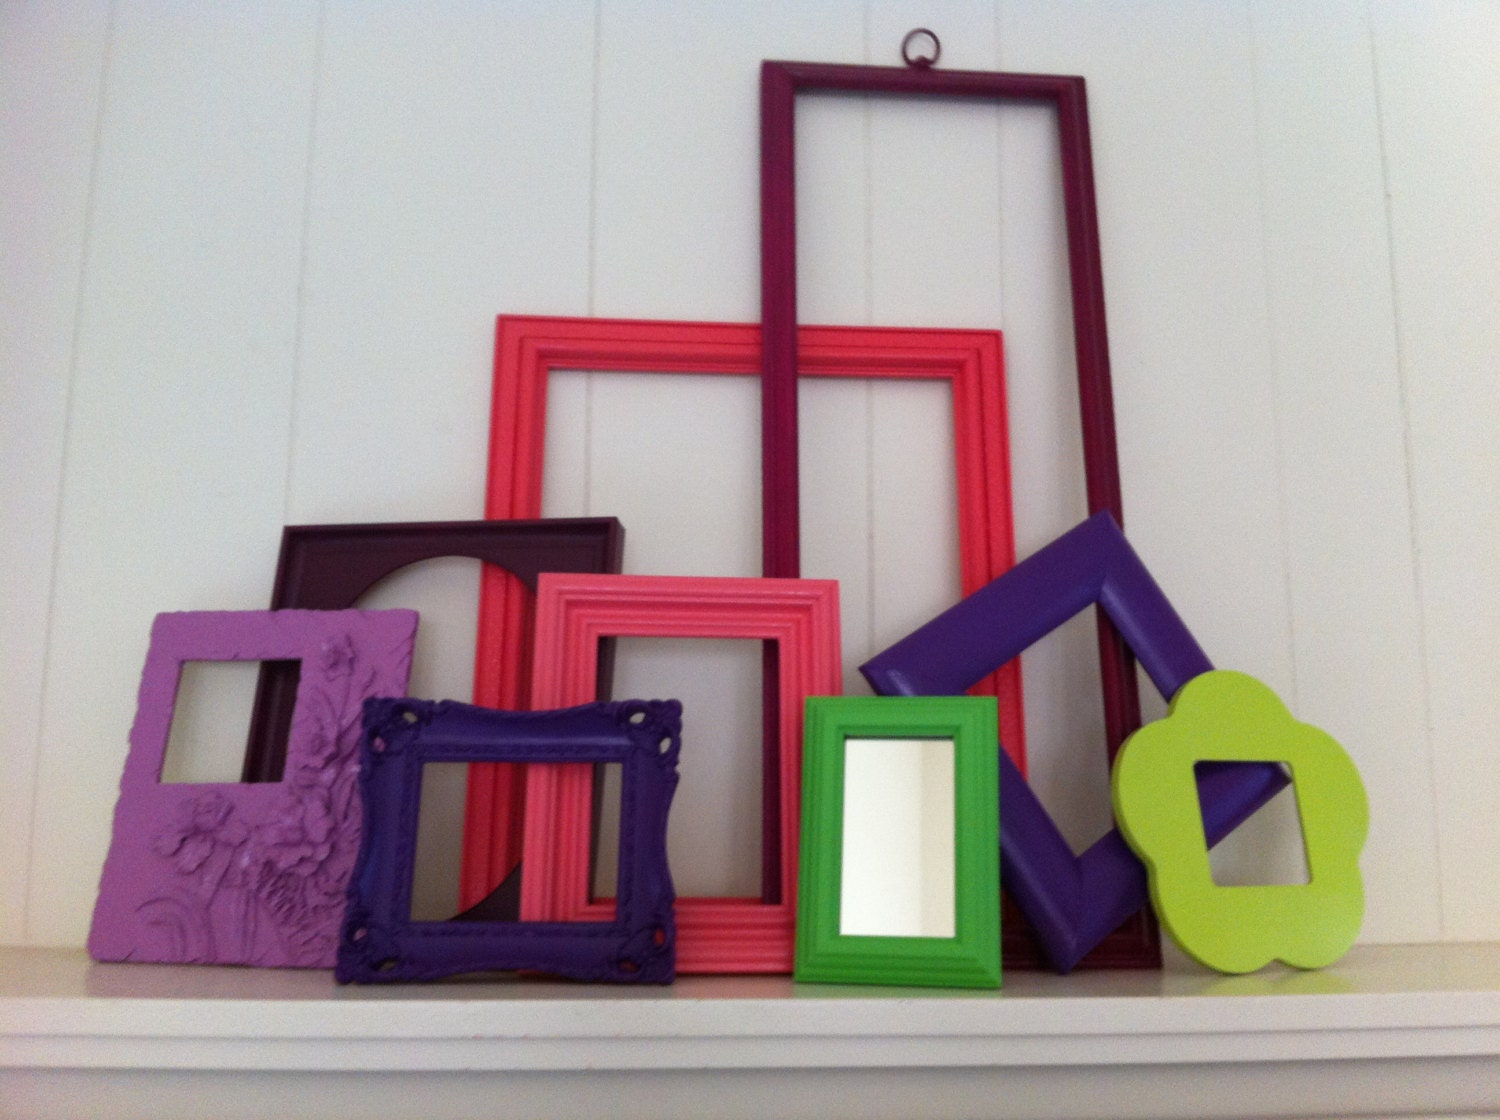 Frame Collage Funky Bright Home Decor Upcycled by FeFiFoFun